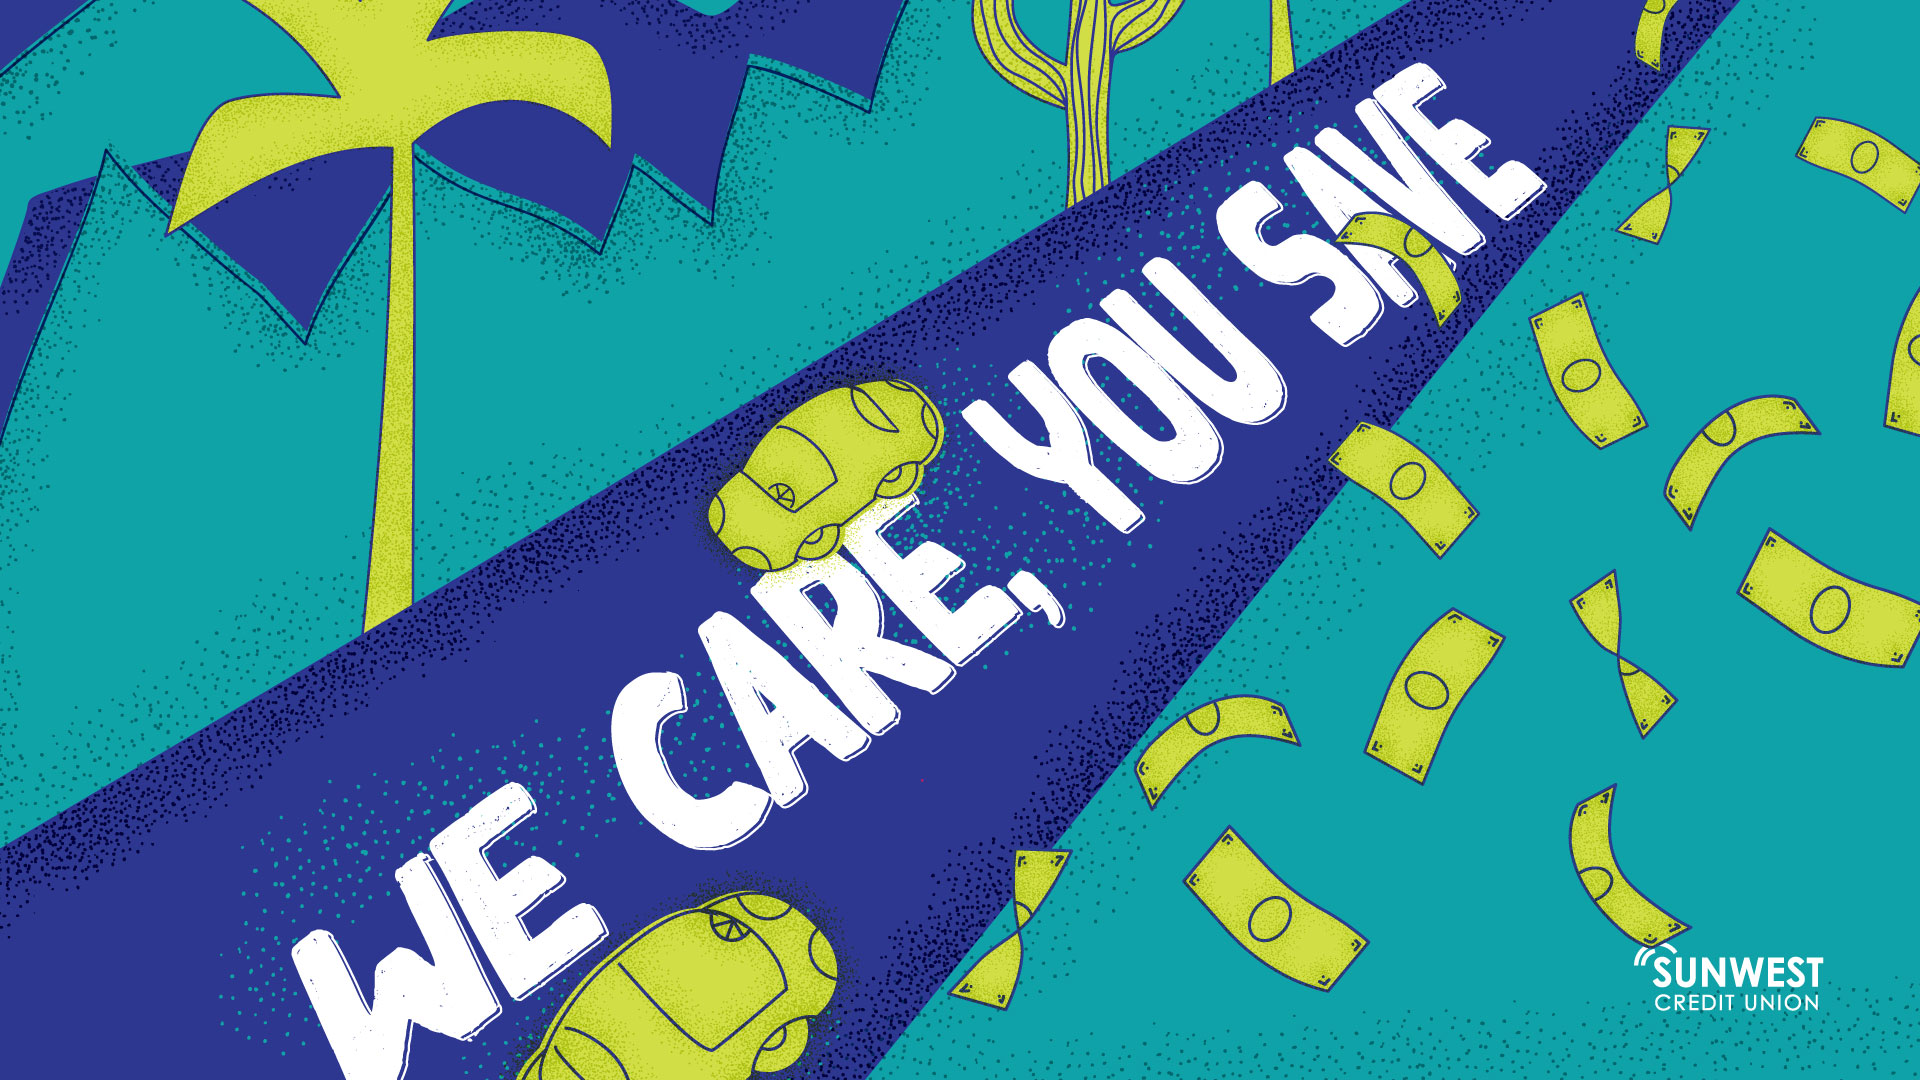 We Care, You Save. It's a Win-Win! Receive up to 2.00% APR* off your current auto rate, as low as 2.47% APR*. Plus, make no payments for 90 days!